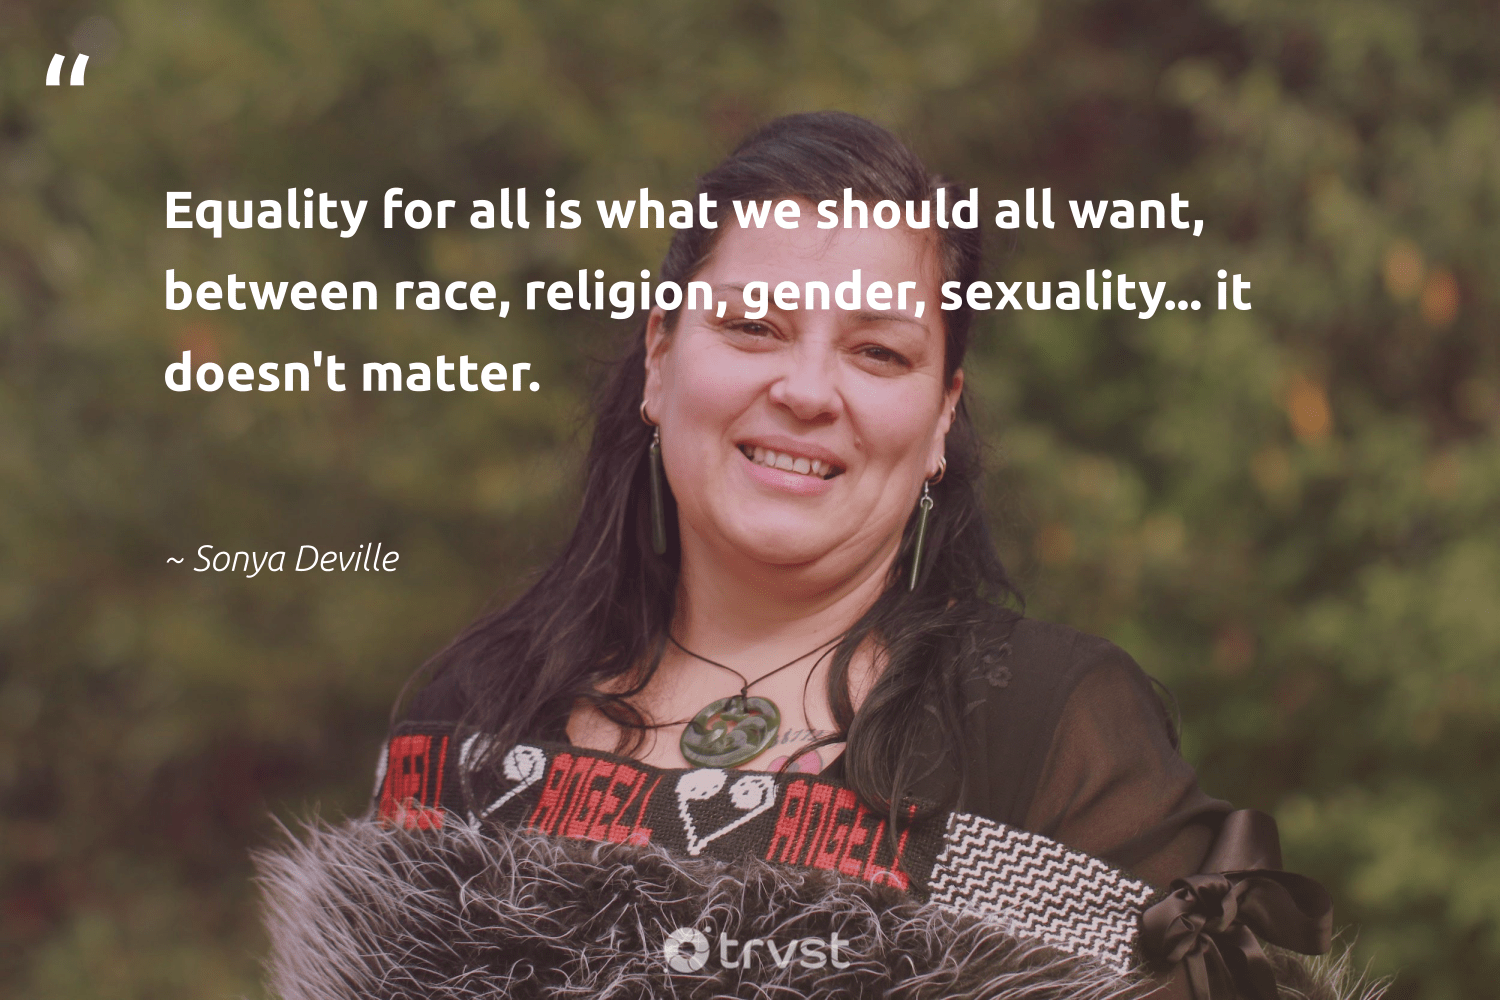 """""""Equality for all is what we should all want, between race, religion, gender, sexuality... it doesn't matter.""""  - Sonya Deville #trvst #quotes #equality #gender #standup #makeadifference #giveback #dotherightthing #empowerment #socialchange #socialgood #impact"""